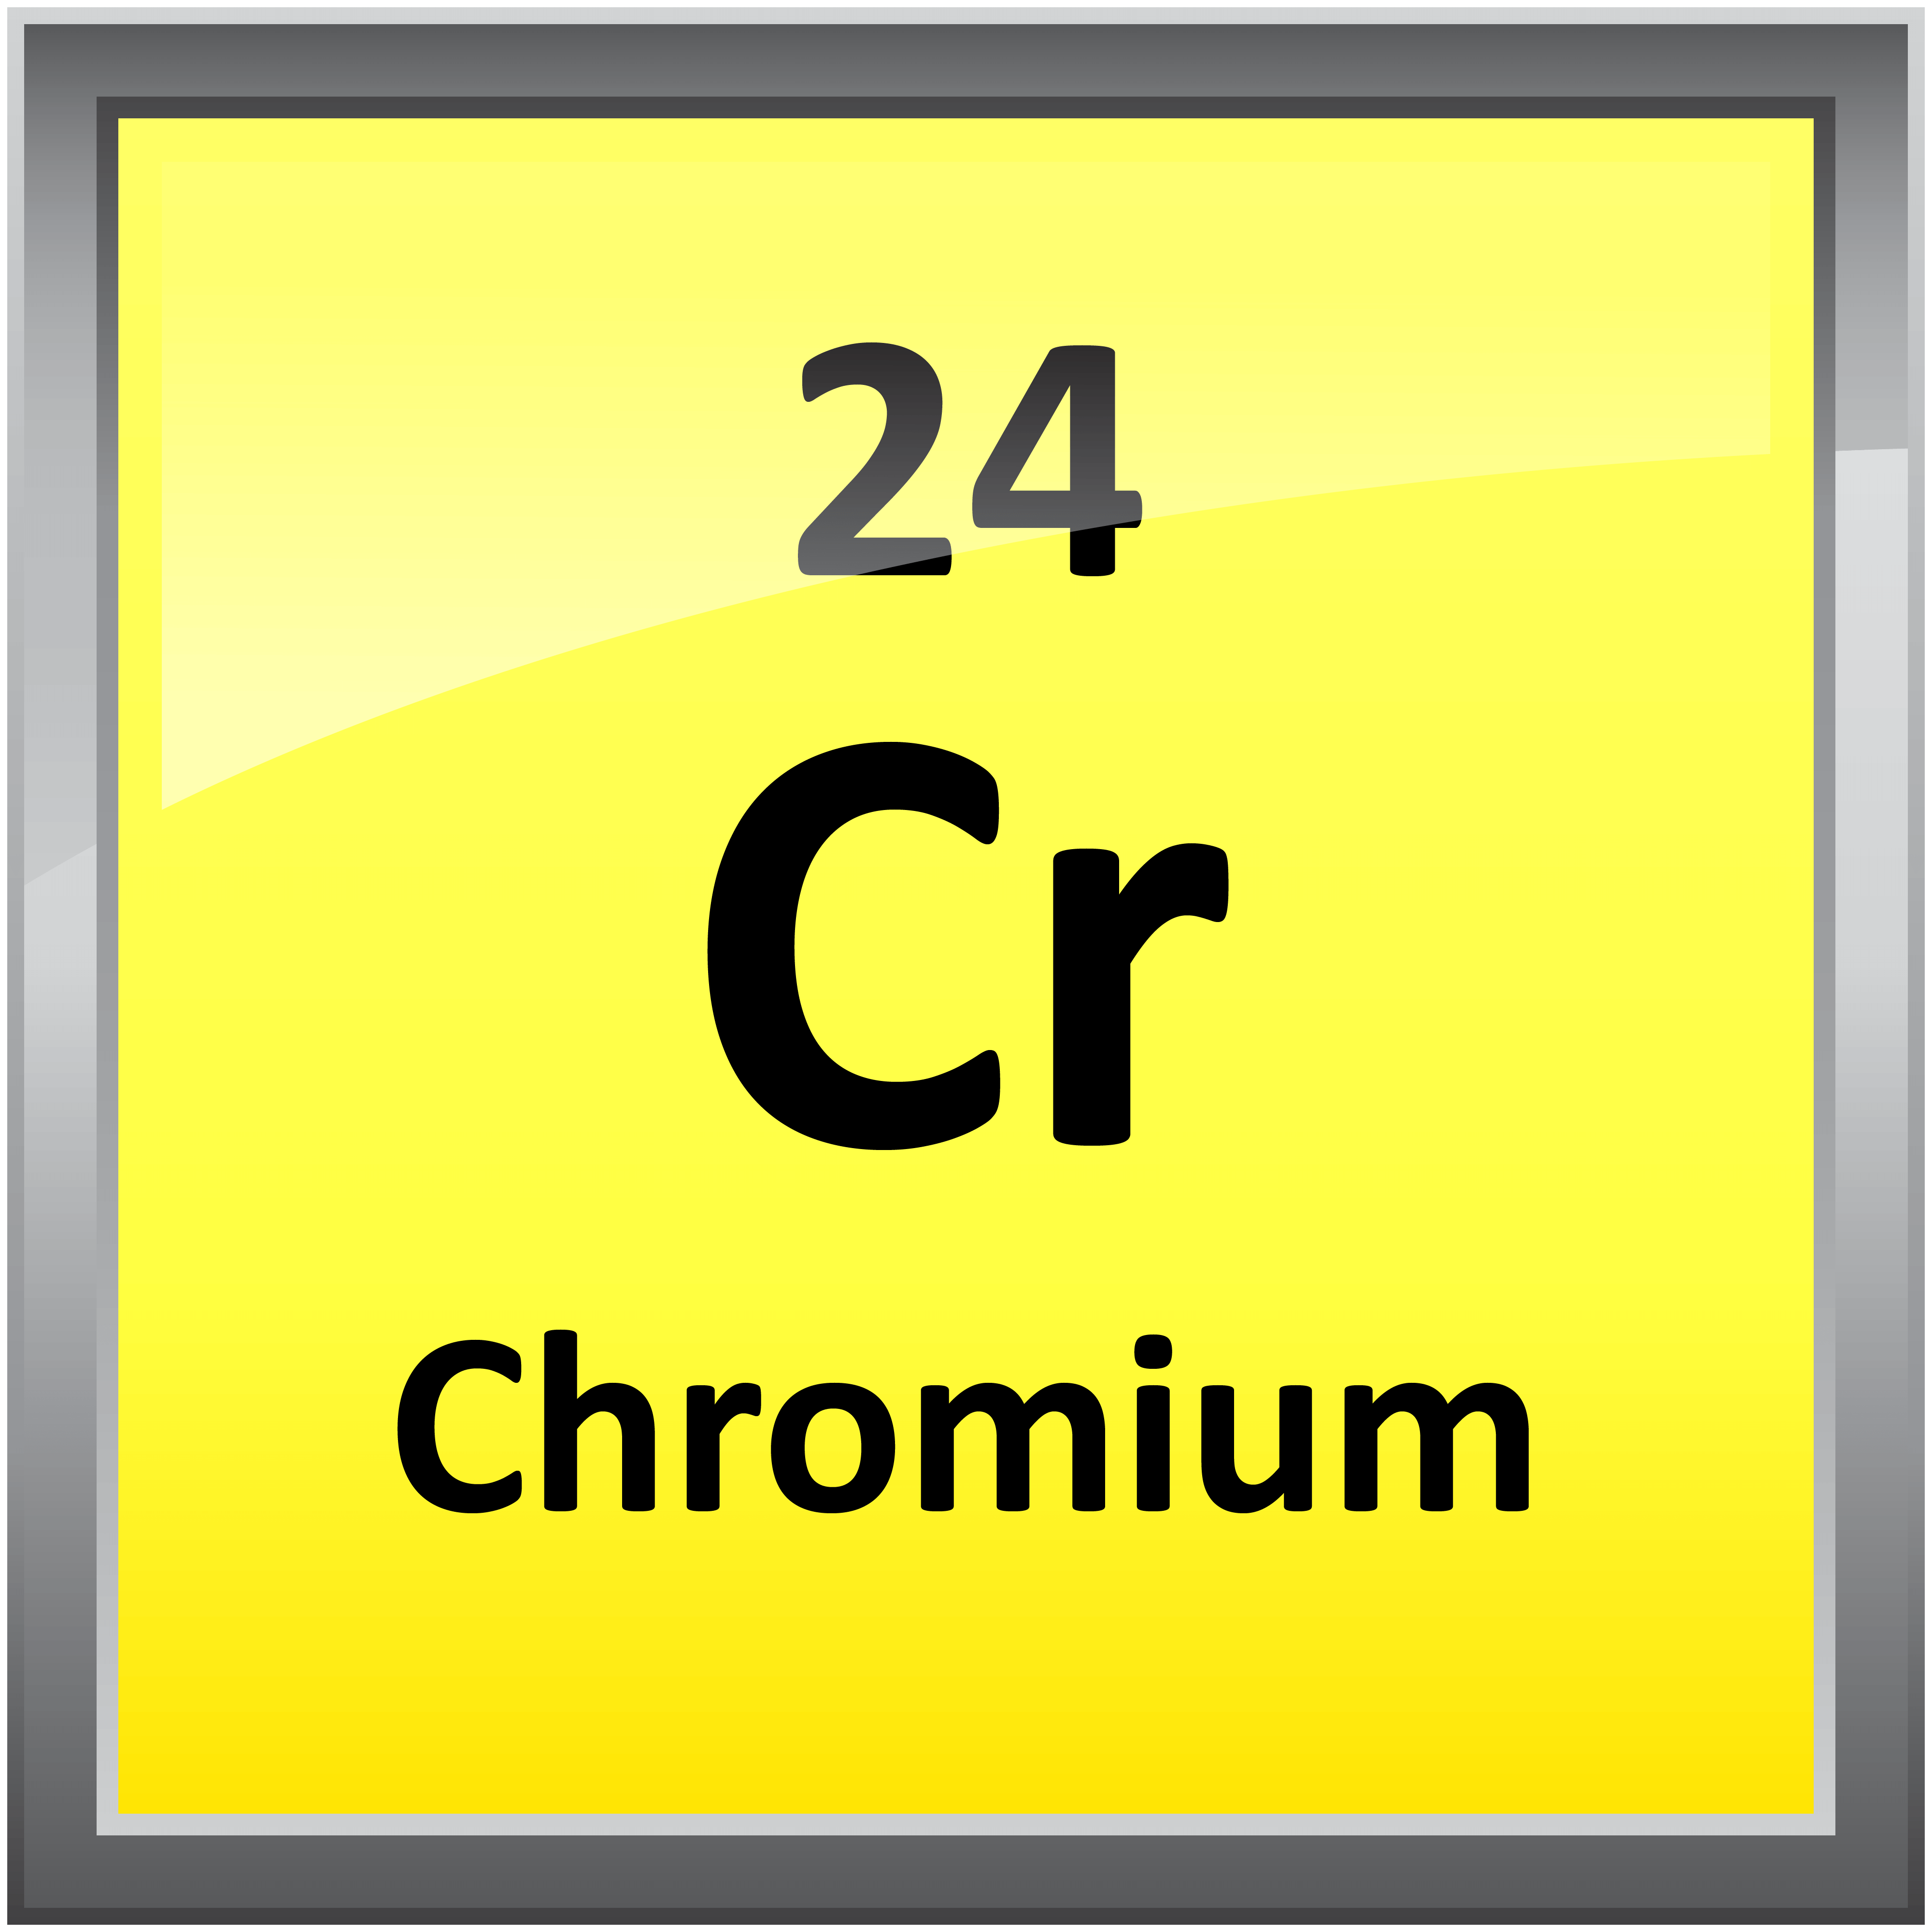 024-Chromium - Science Notes and Projects